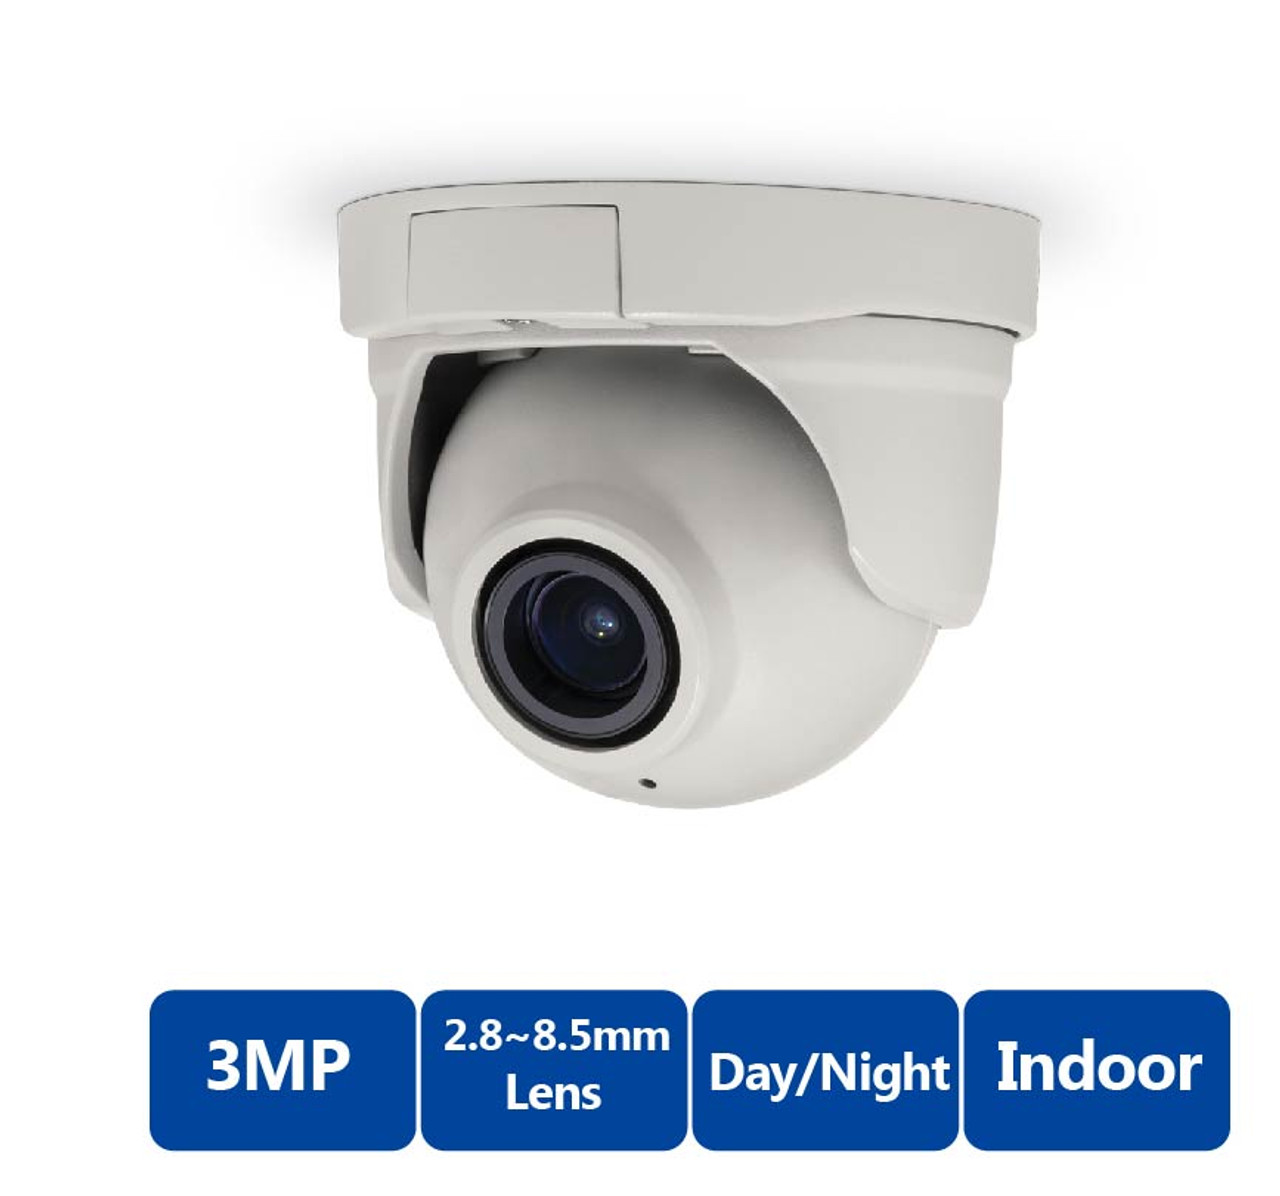 ARECONT VISION AV3245PM-D-LG IP CAMERA WINDOWS 7 64BIT DRIVER DOWNLOAD